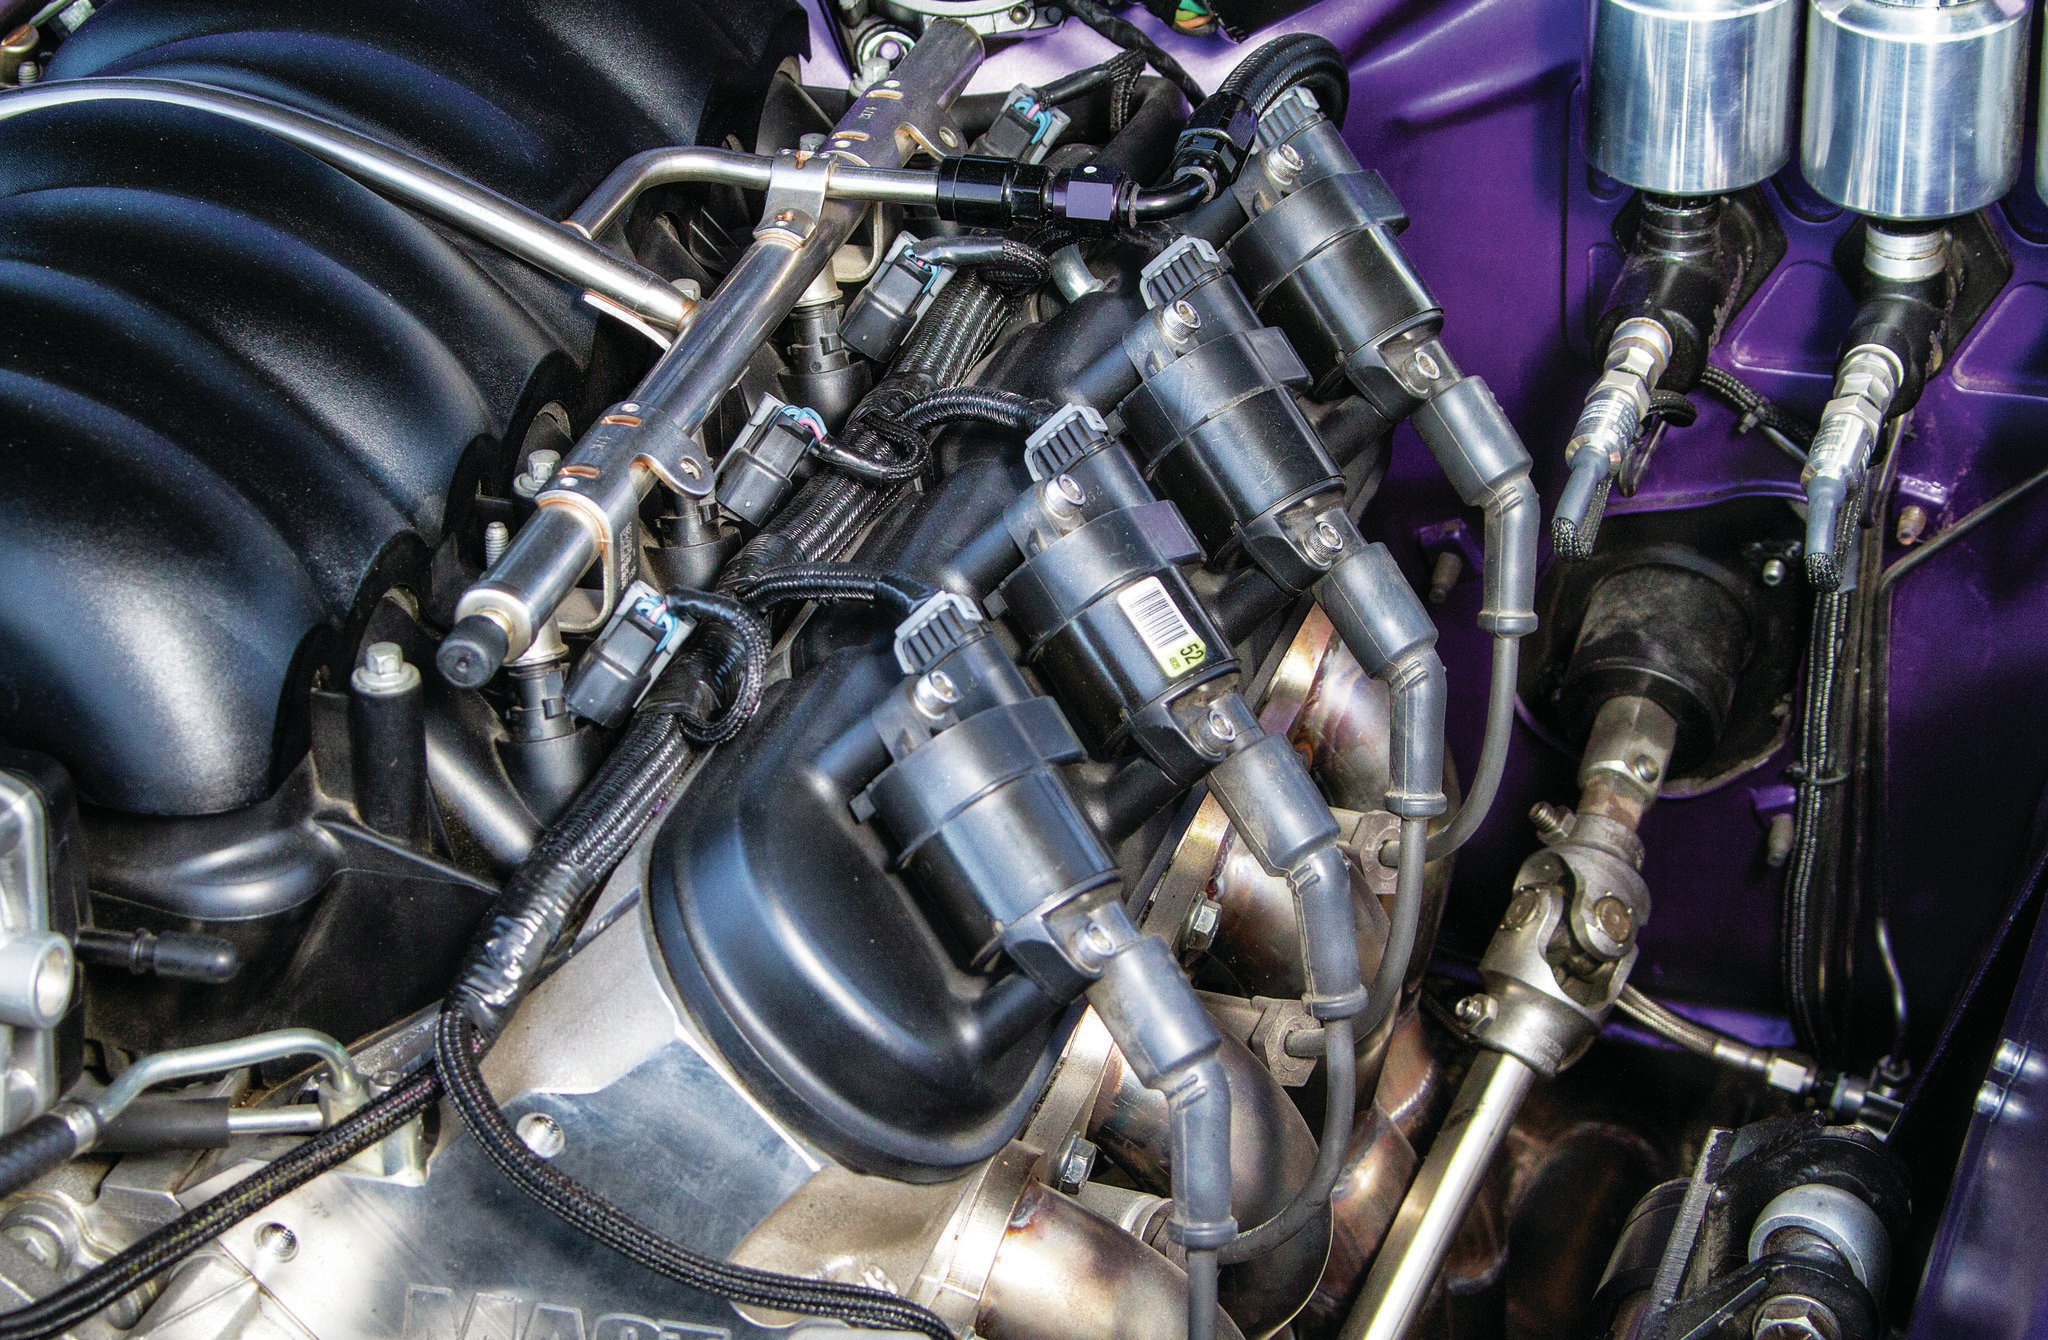 Kooks stainless-steel longtube headers let the LS3 breathe into 3-inch Borla and custom X-pipe.